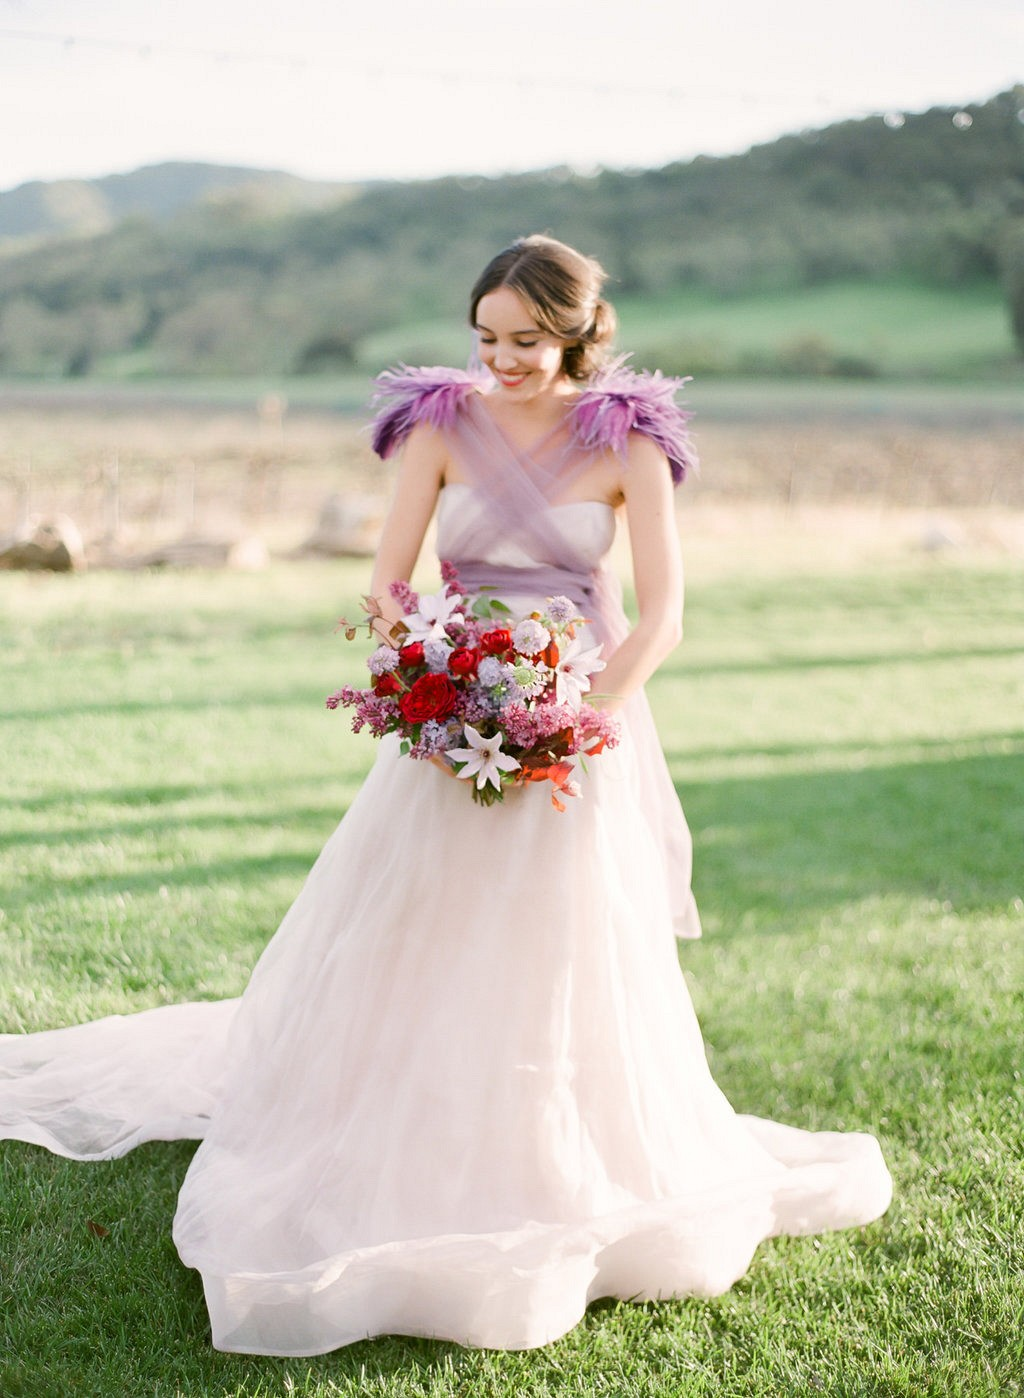 Burgundy and Lilac: An Unexpected Wedding Floral Combination